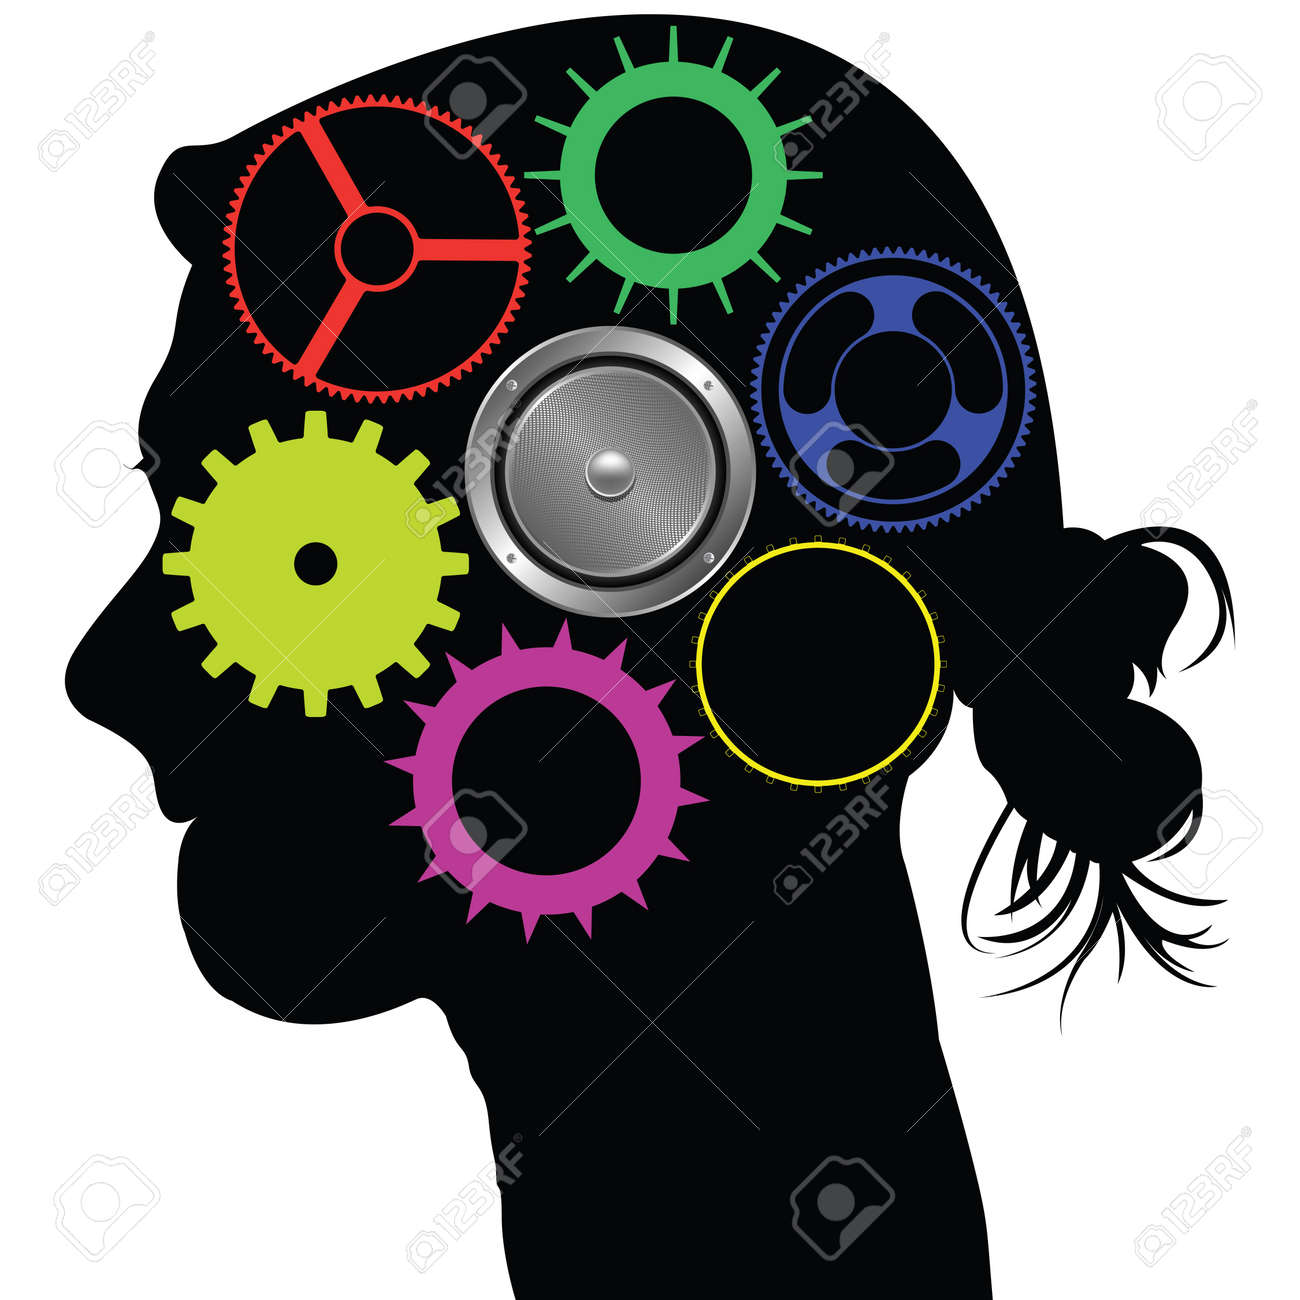 brain mechanism, abstract   art illustration Stock Photo - 8545749